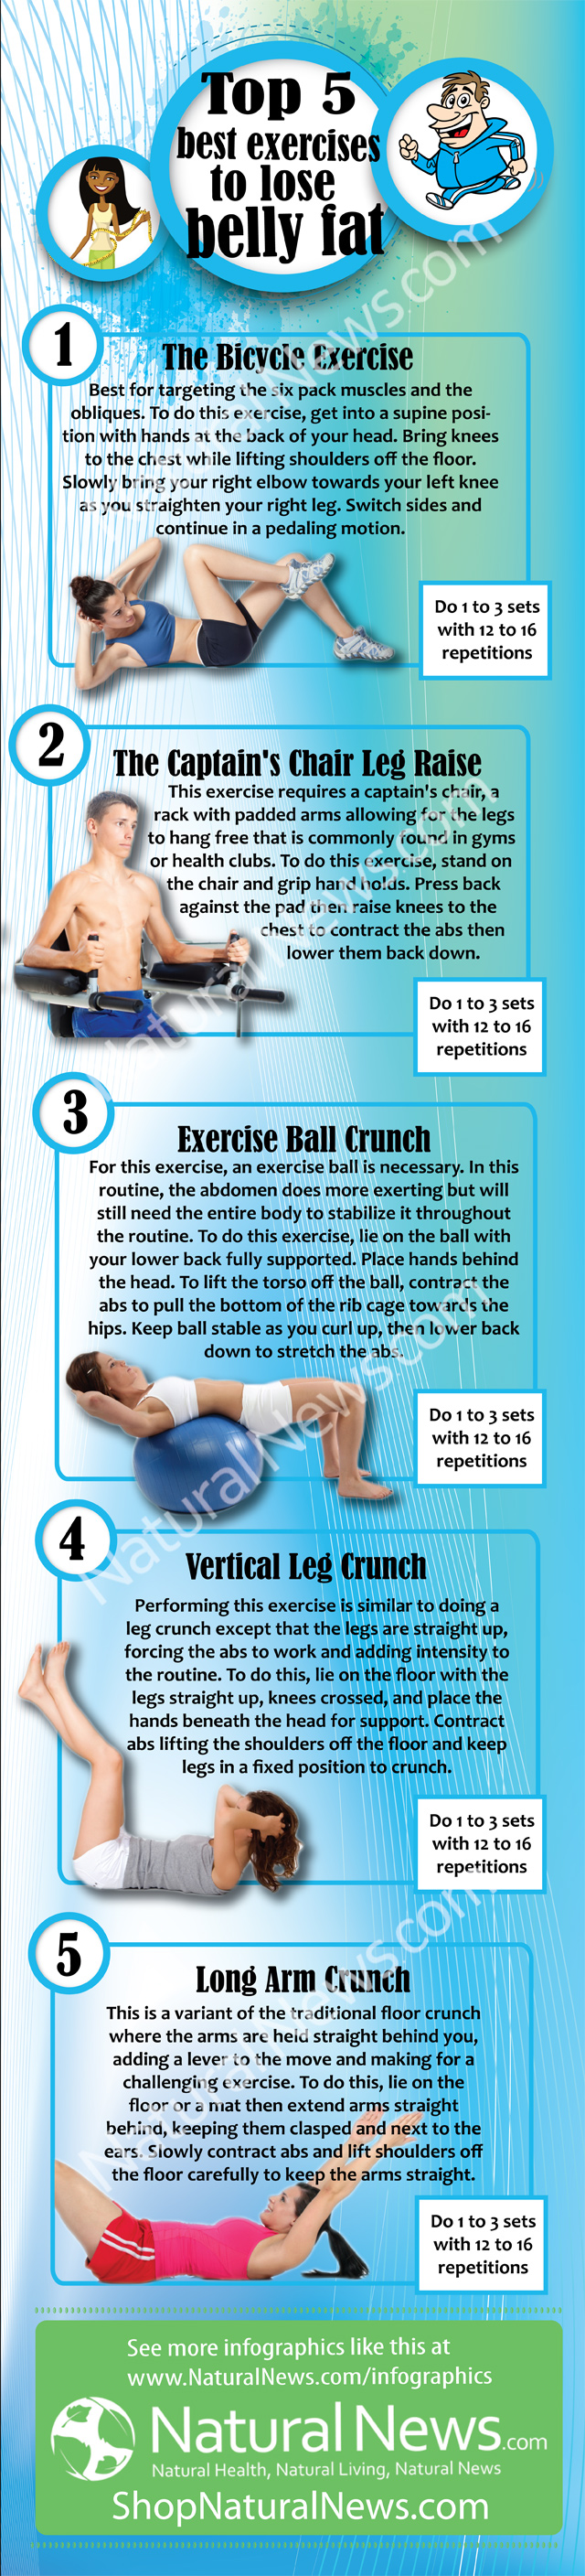 Top 5 Exercises to Burn Belly Fat